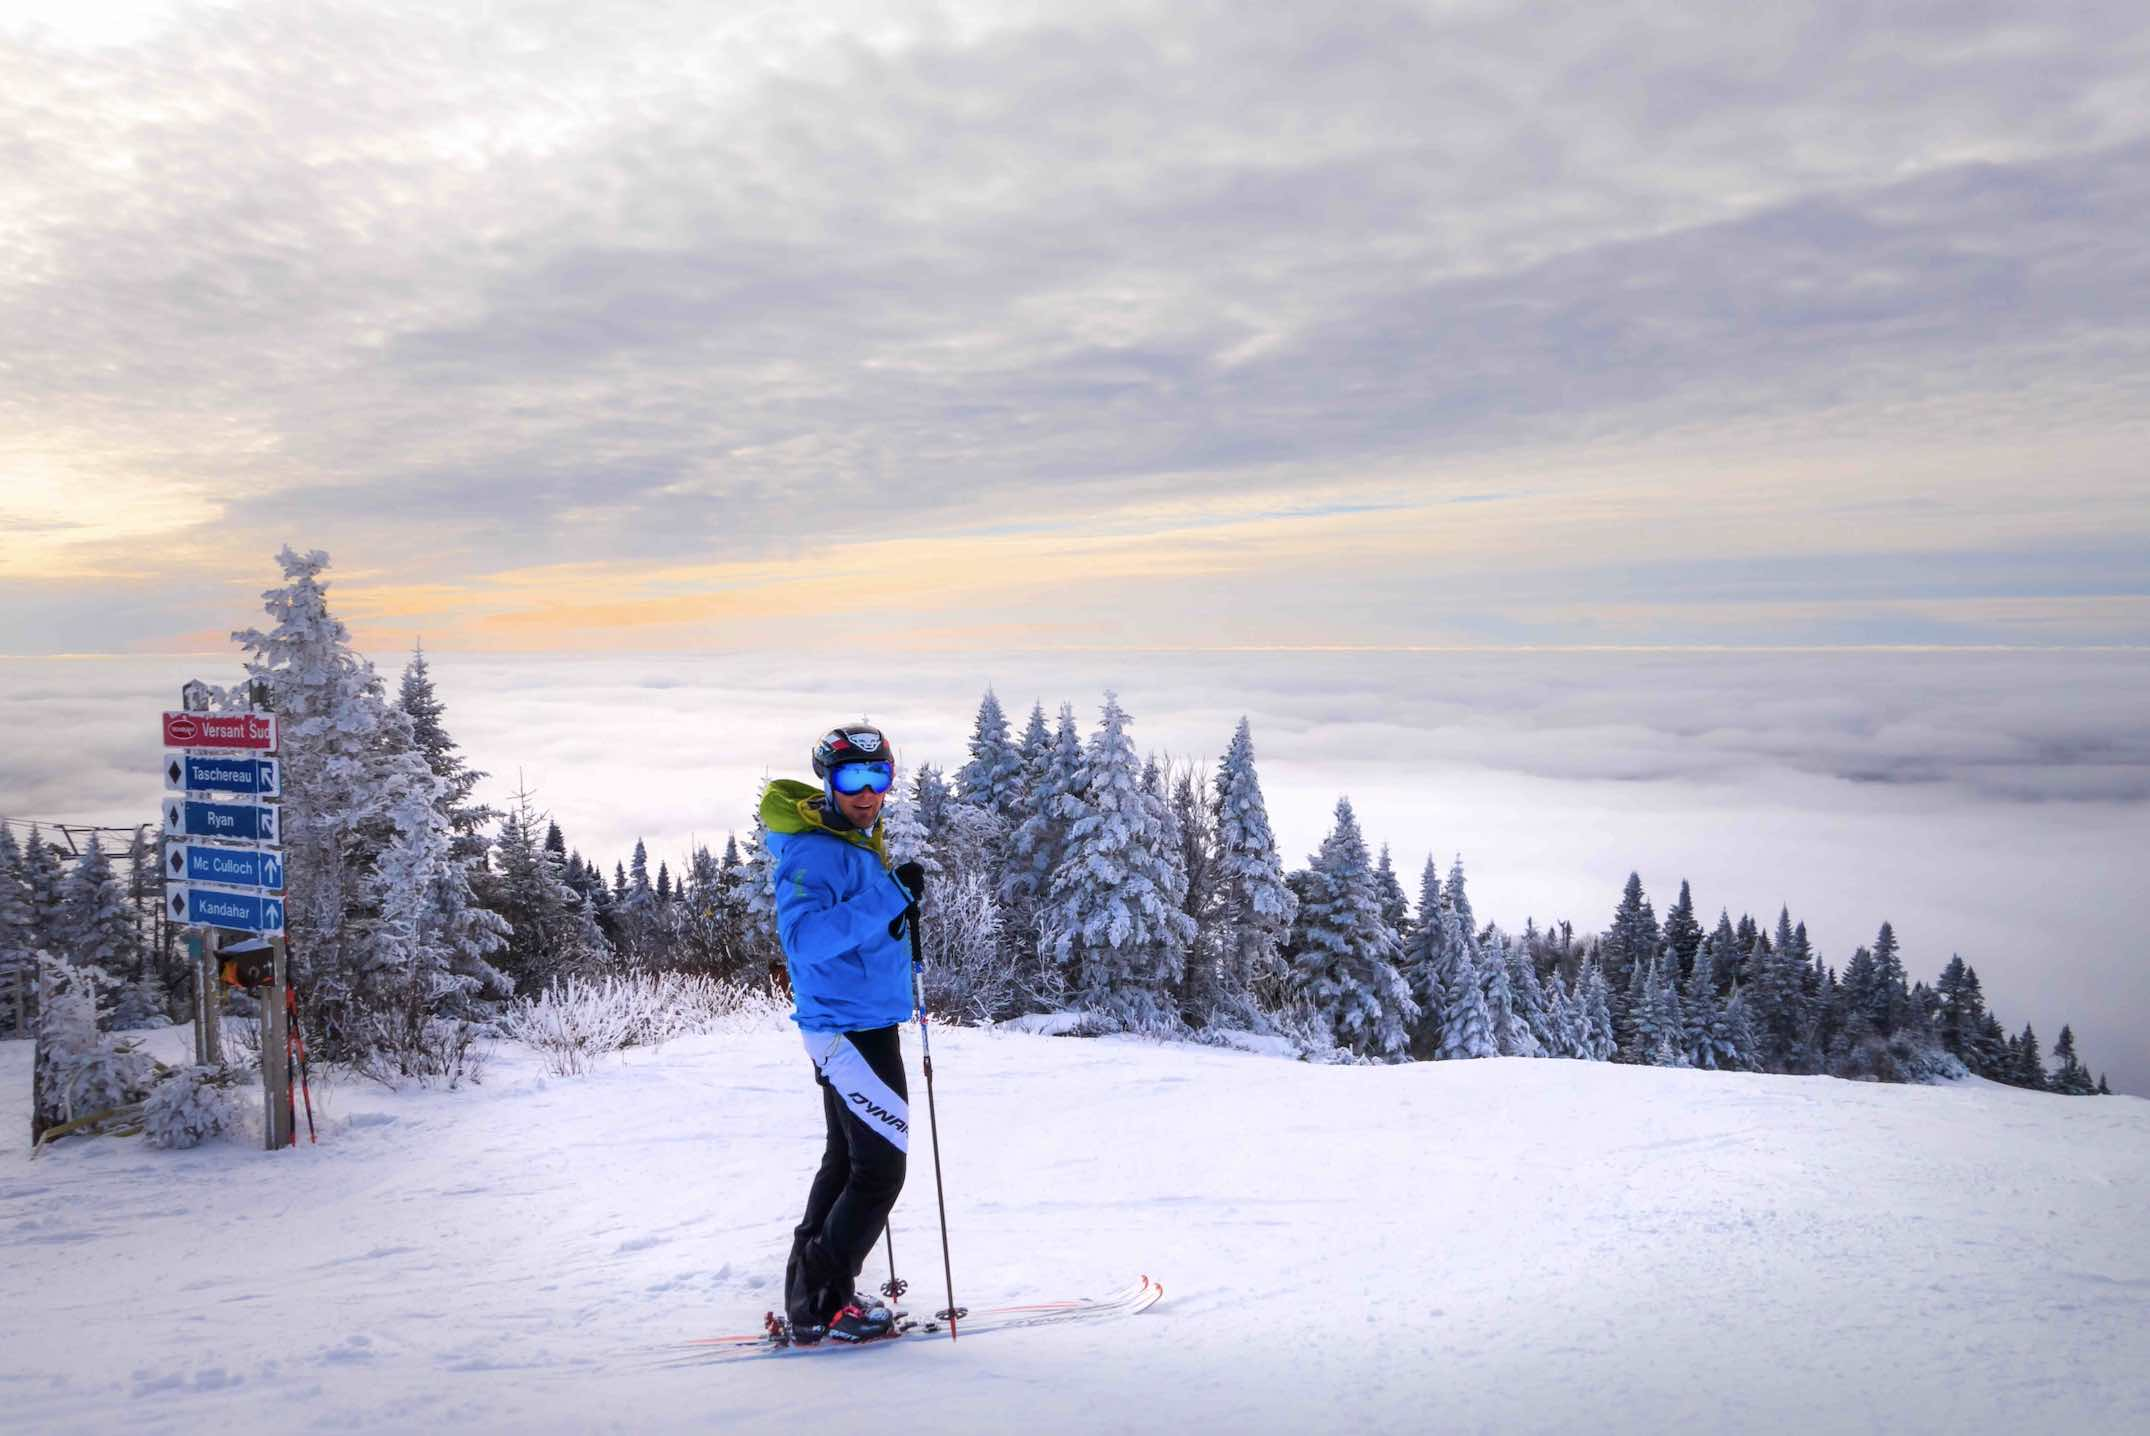 Tremblant winter things to do in Mont Tremblant with skiier at top of the mountains above clouds